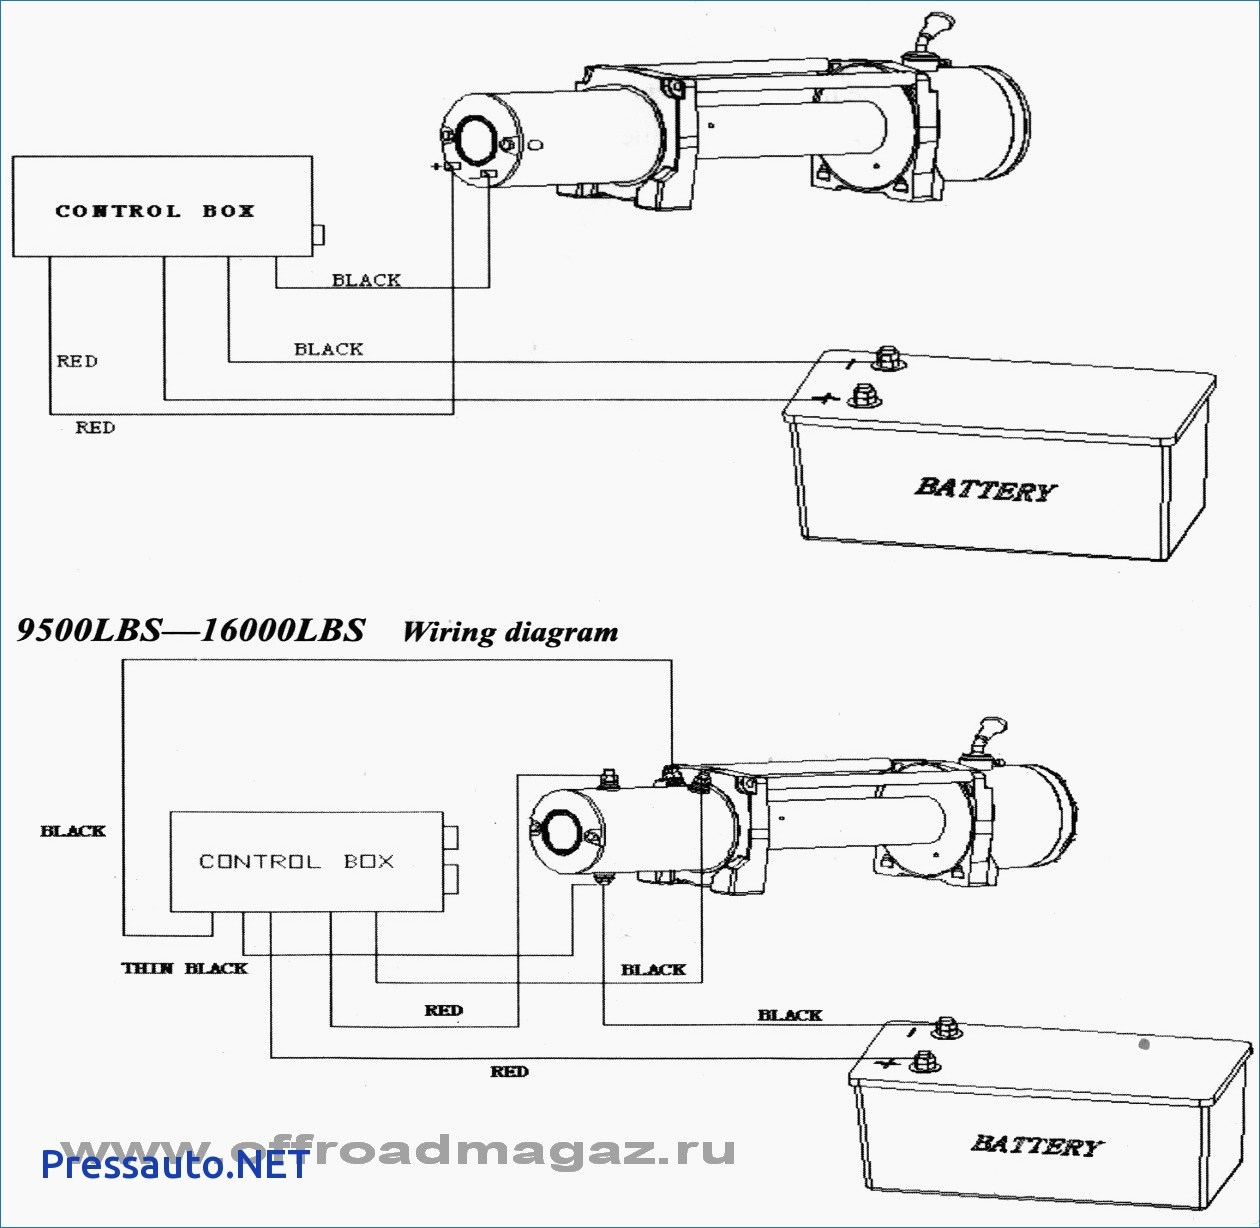 Warn Winch Wiring Diagram 120 Volt Motor - Wiring Diagrams IMG on